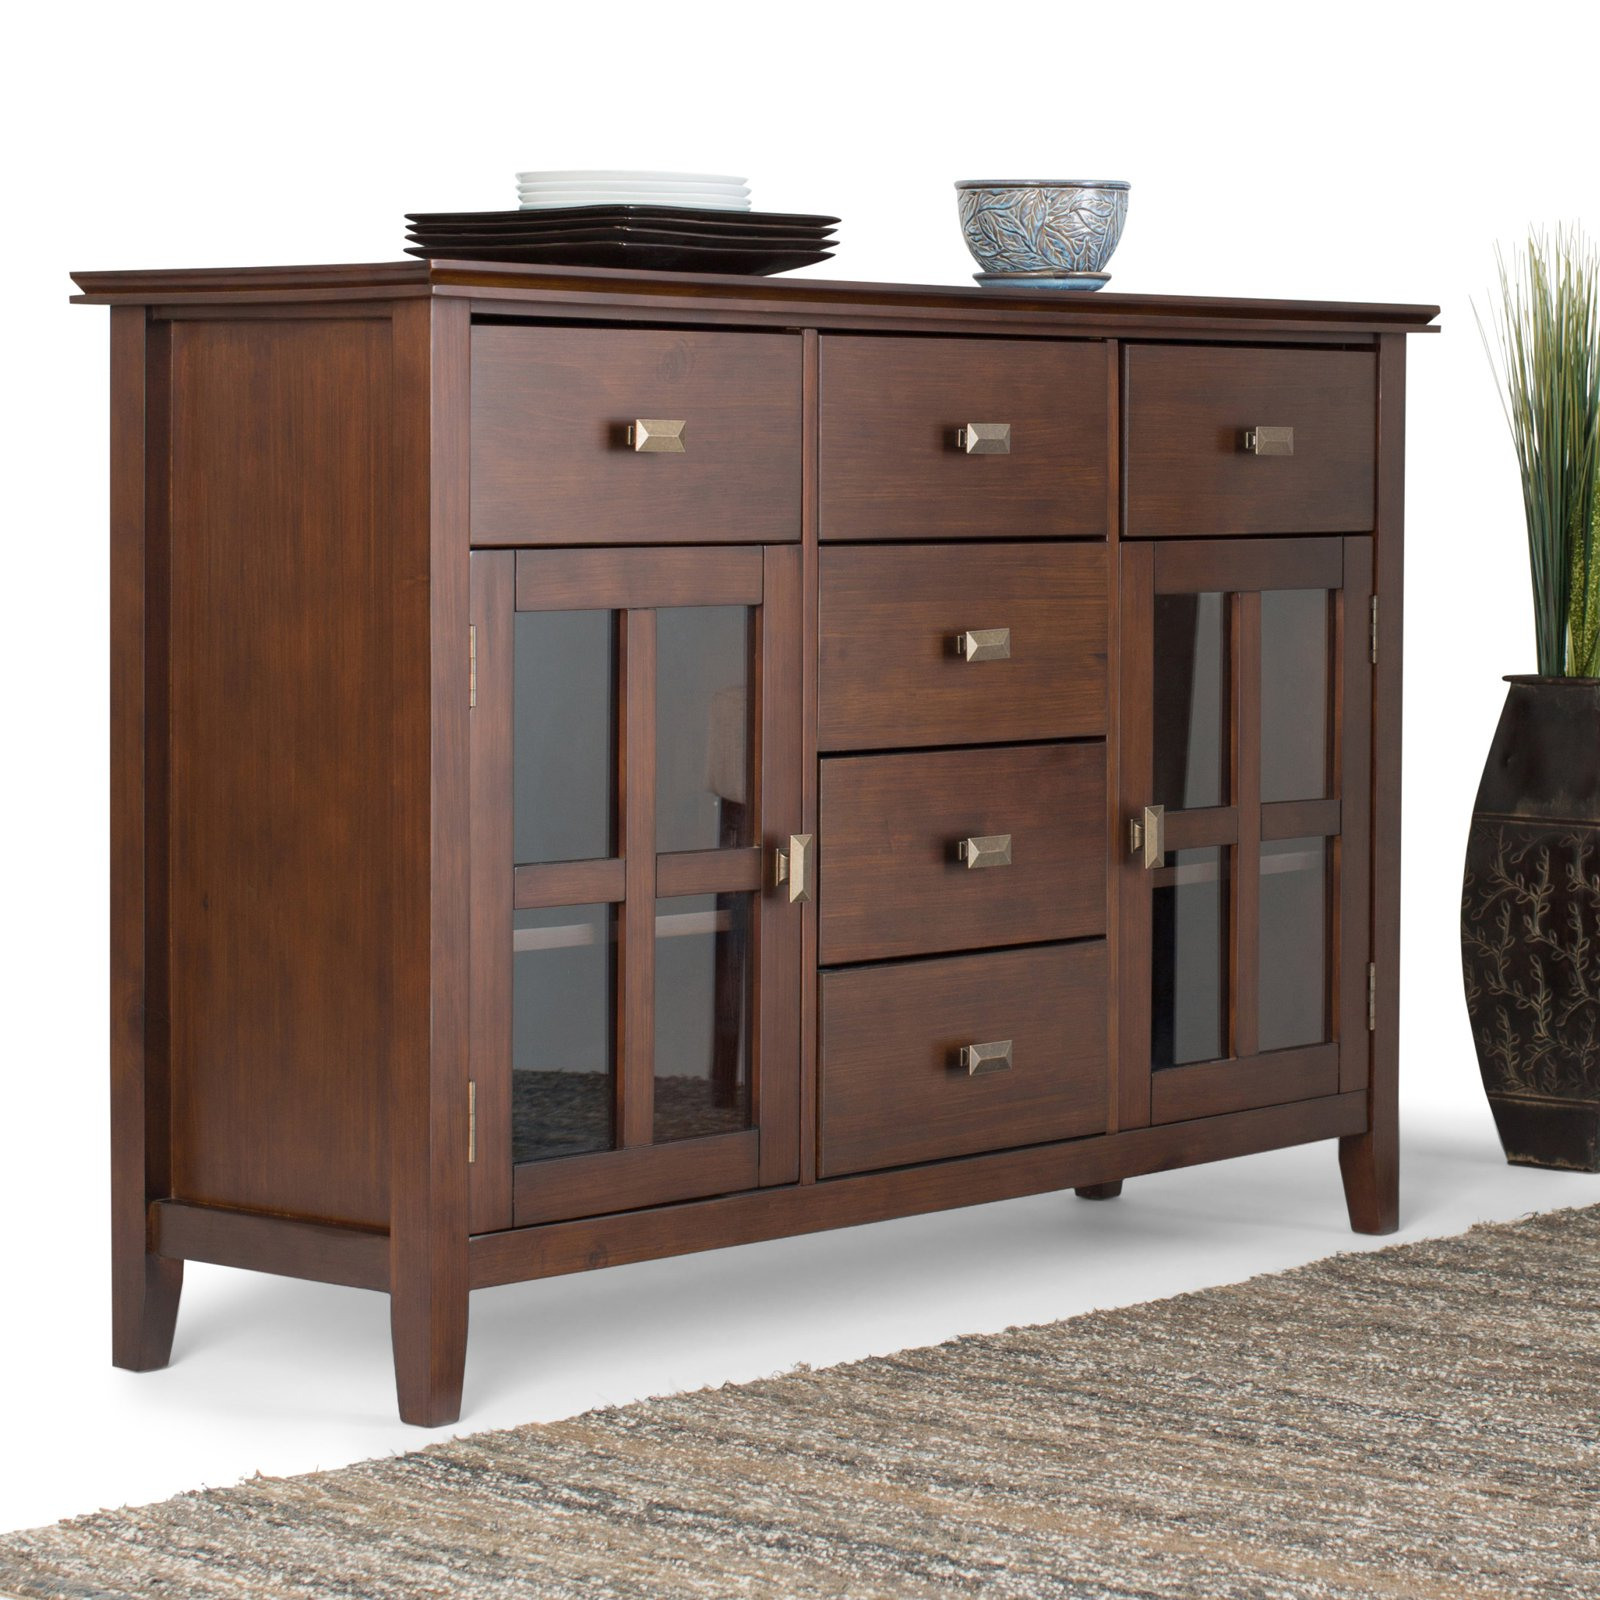 Artisan Sideboard Buffet by CCT Global Sourcing Inc